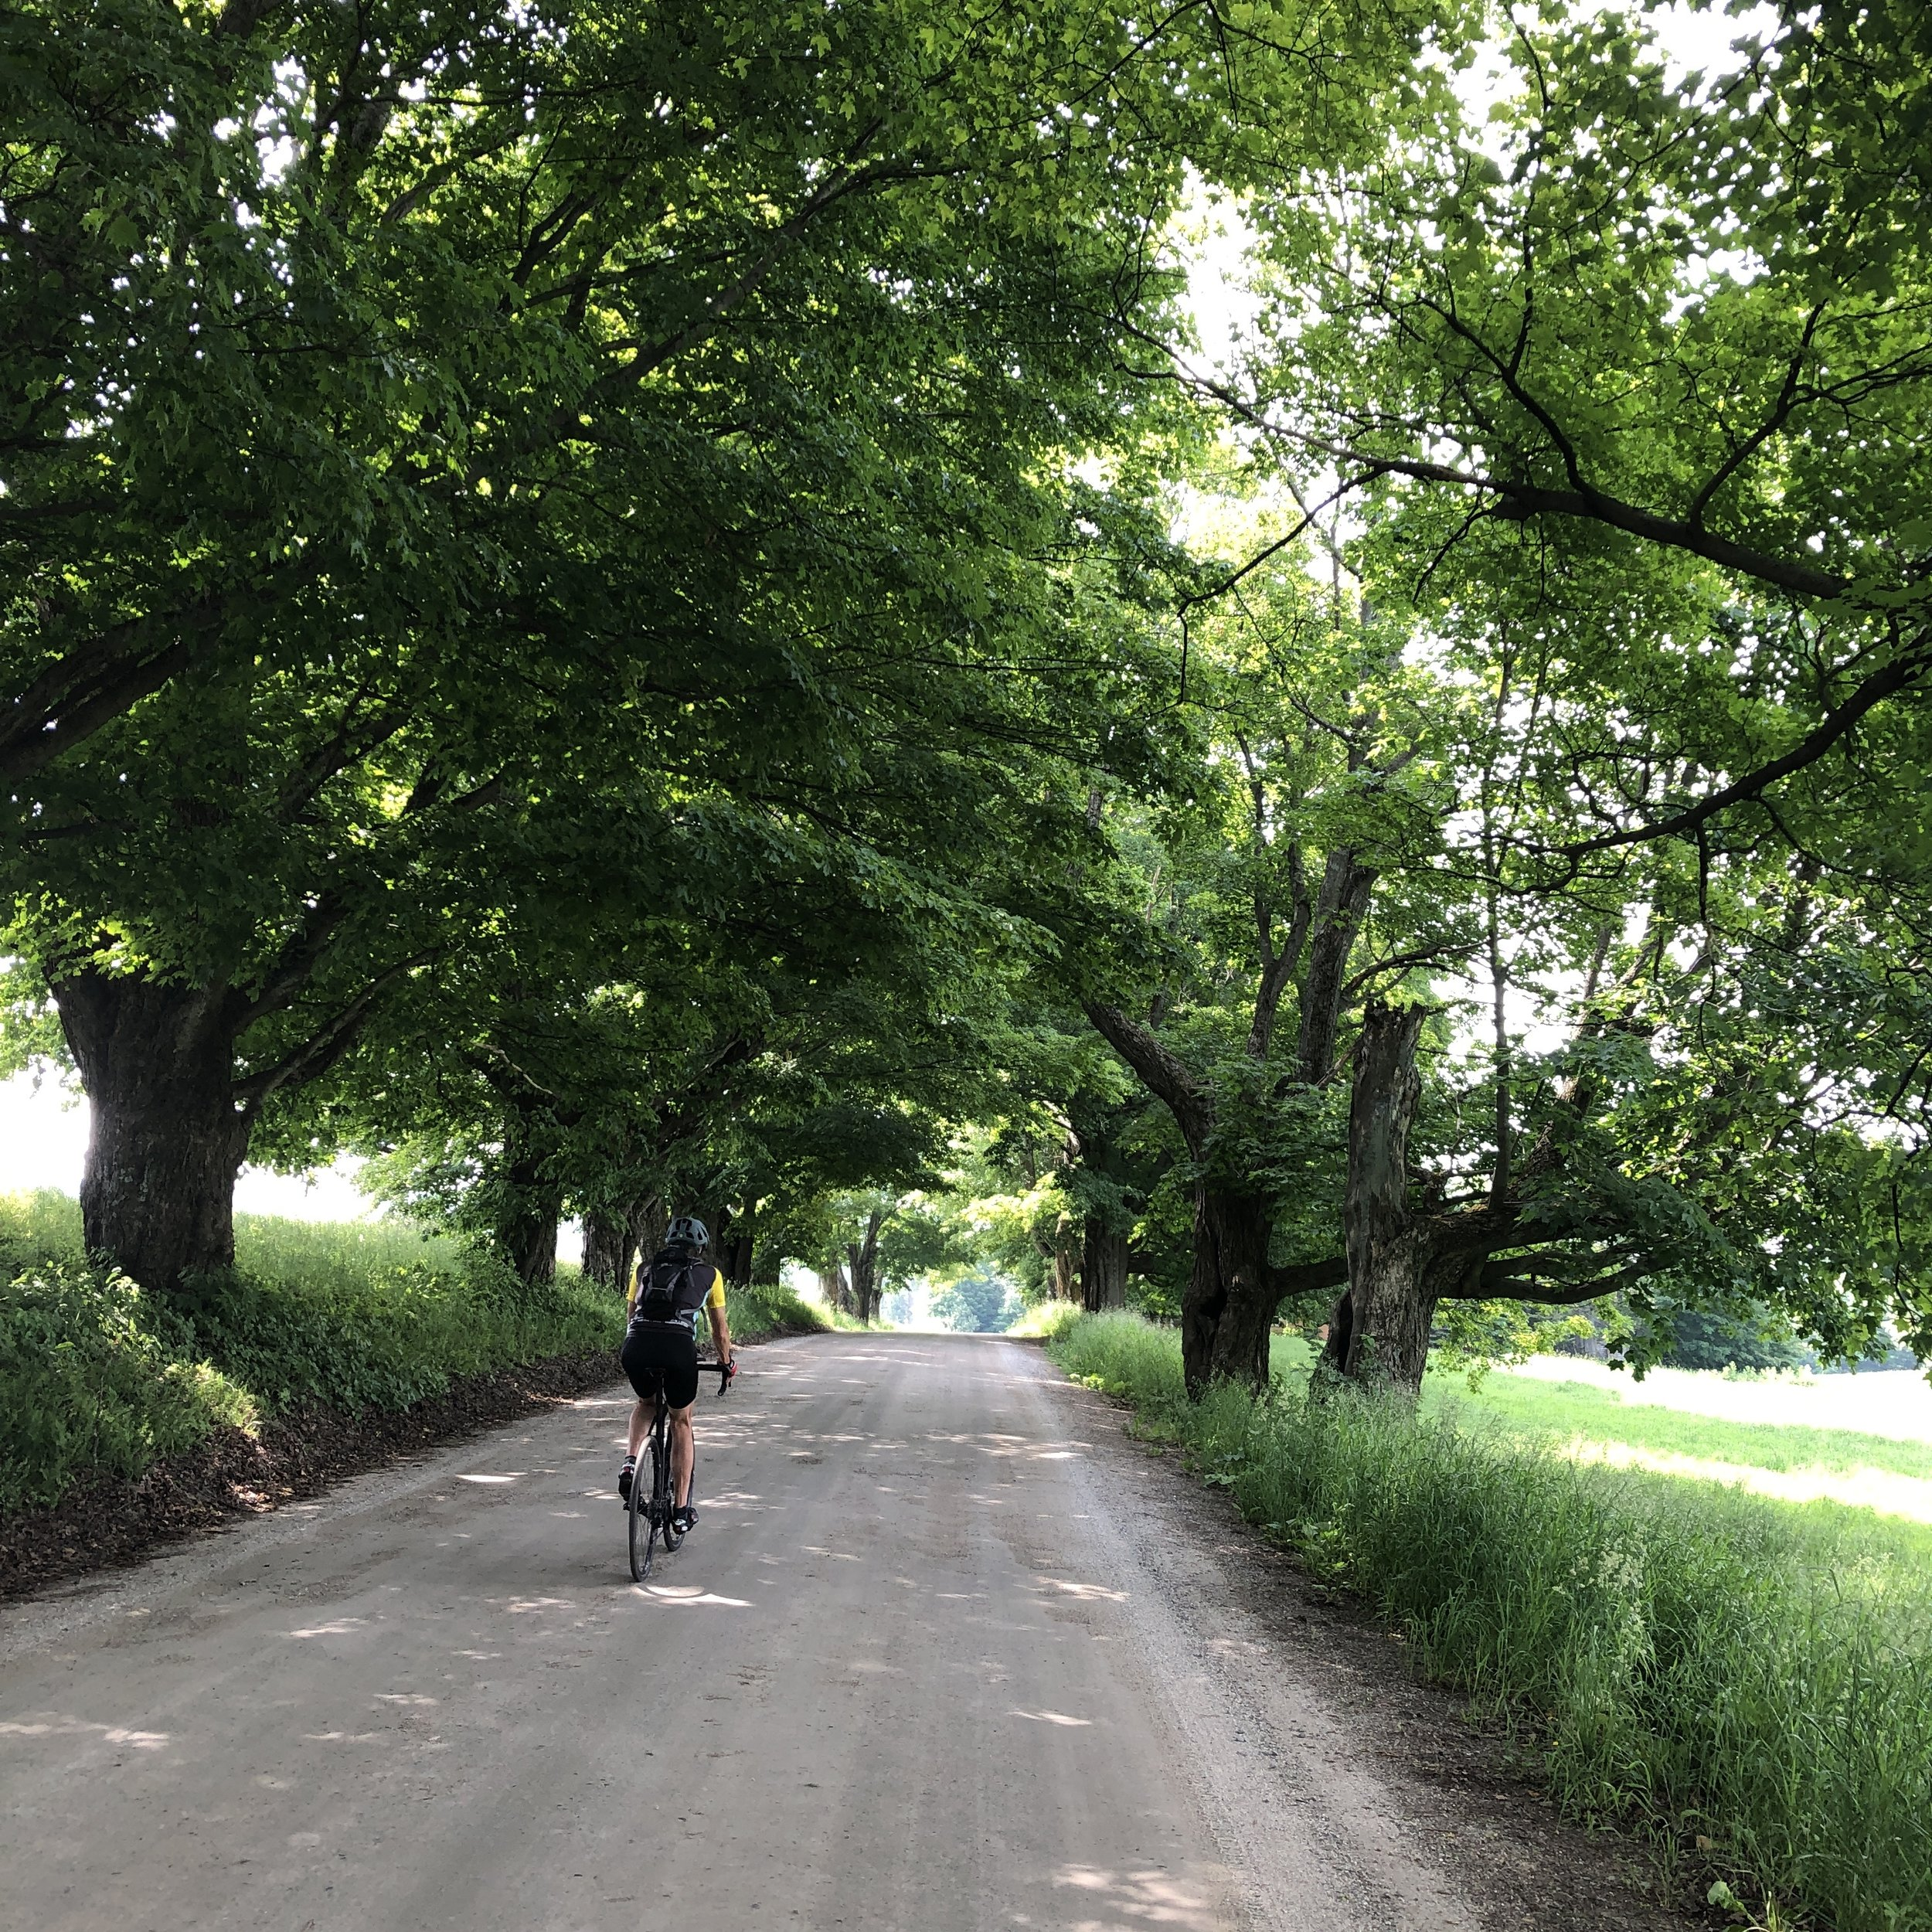 Charming backroads provide scenic secrets and safer conditions for riding.